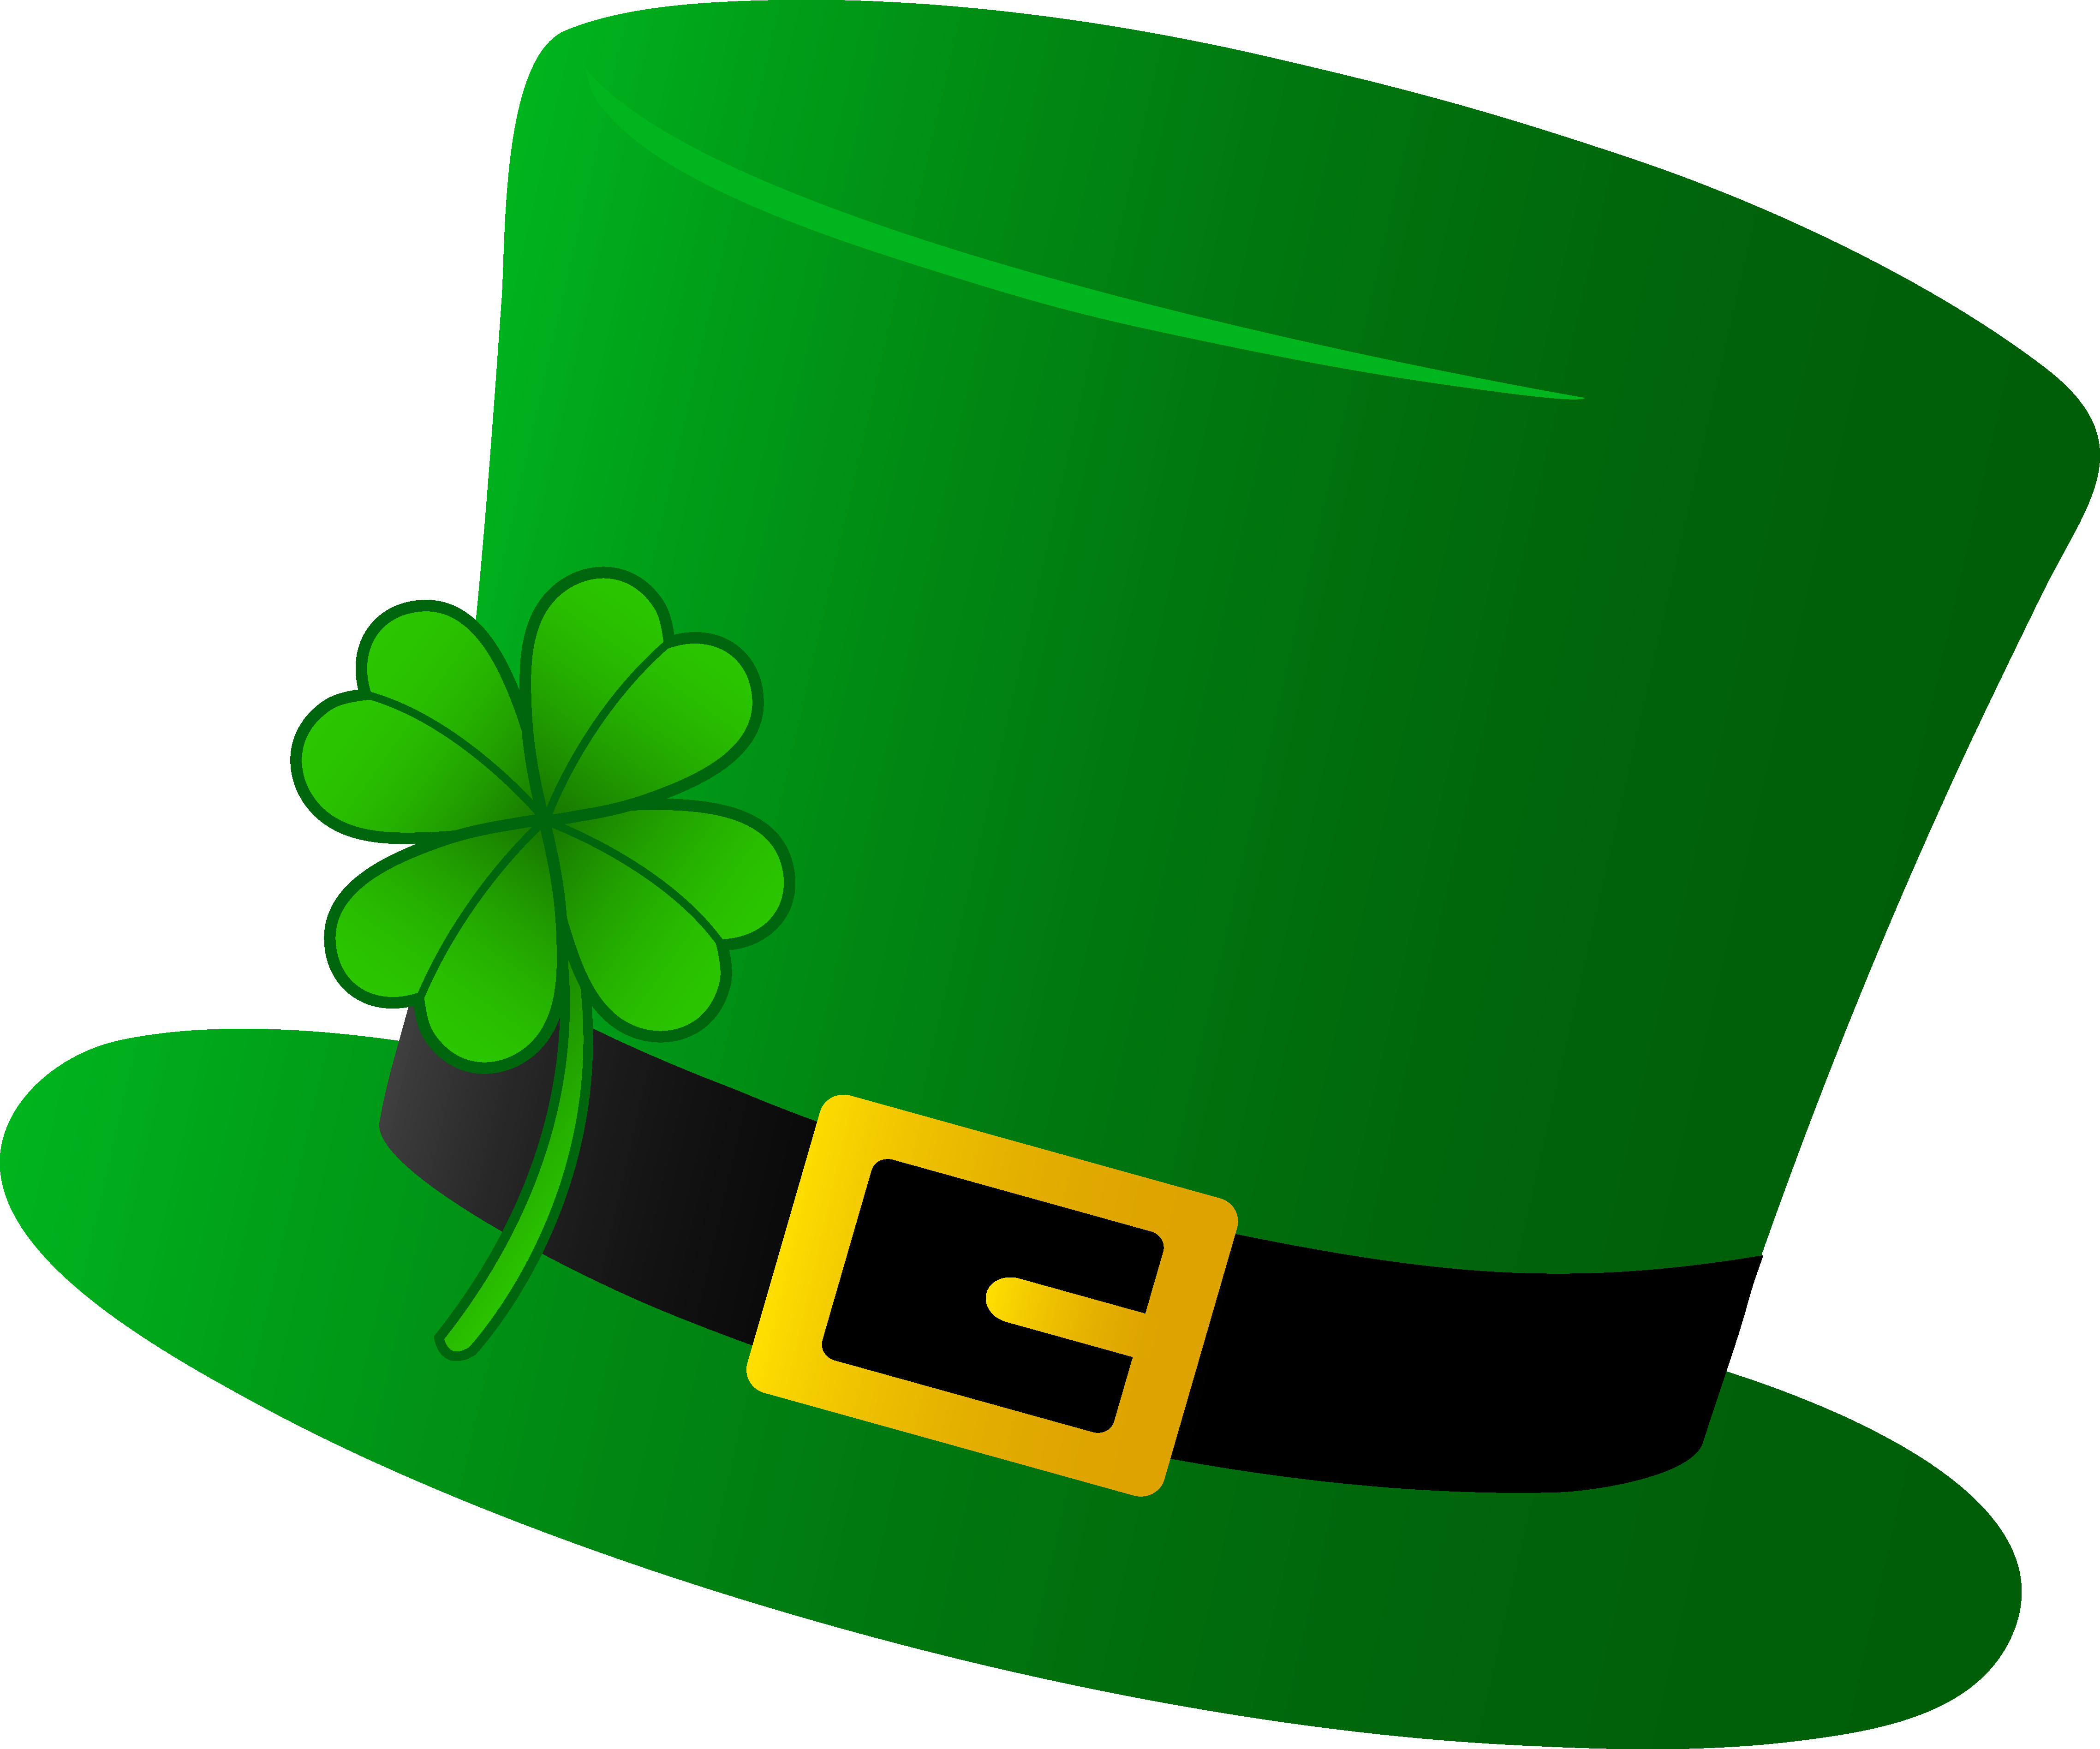 png black and white library February ocean city will. Clover clipart st pats.